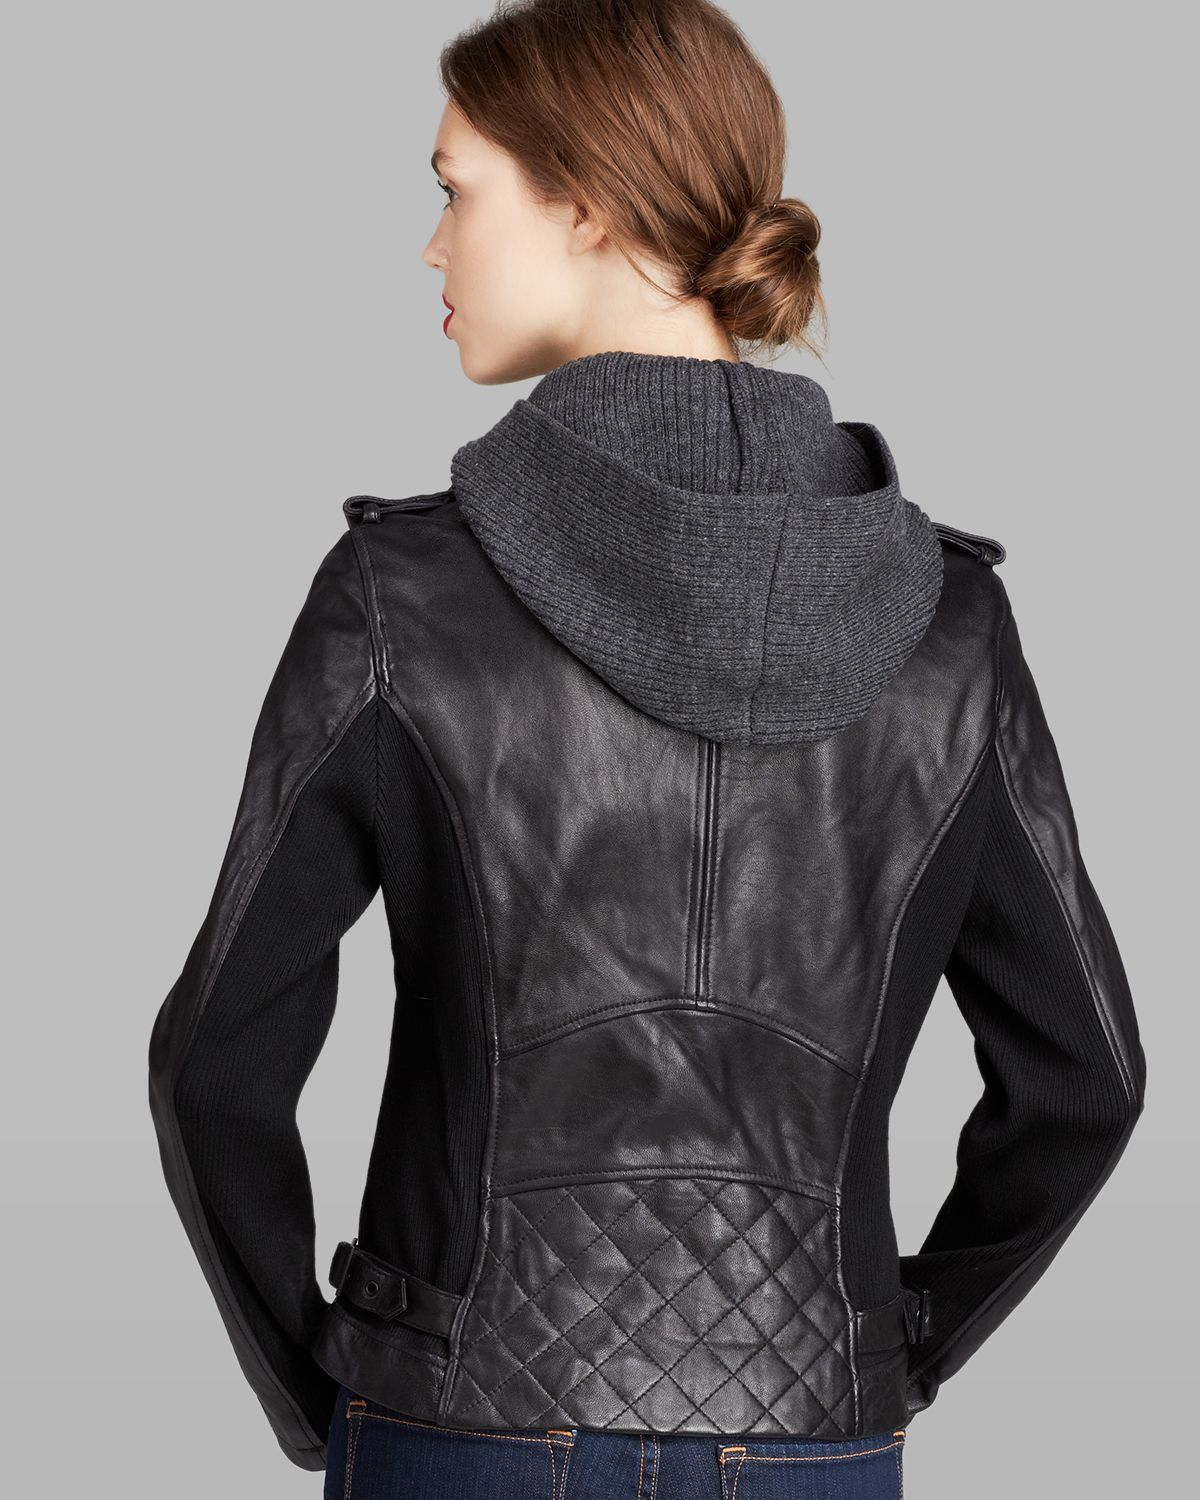 Lyst - Dkny Jacket - Knit Hood Leather Moto in Black